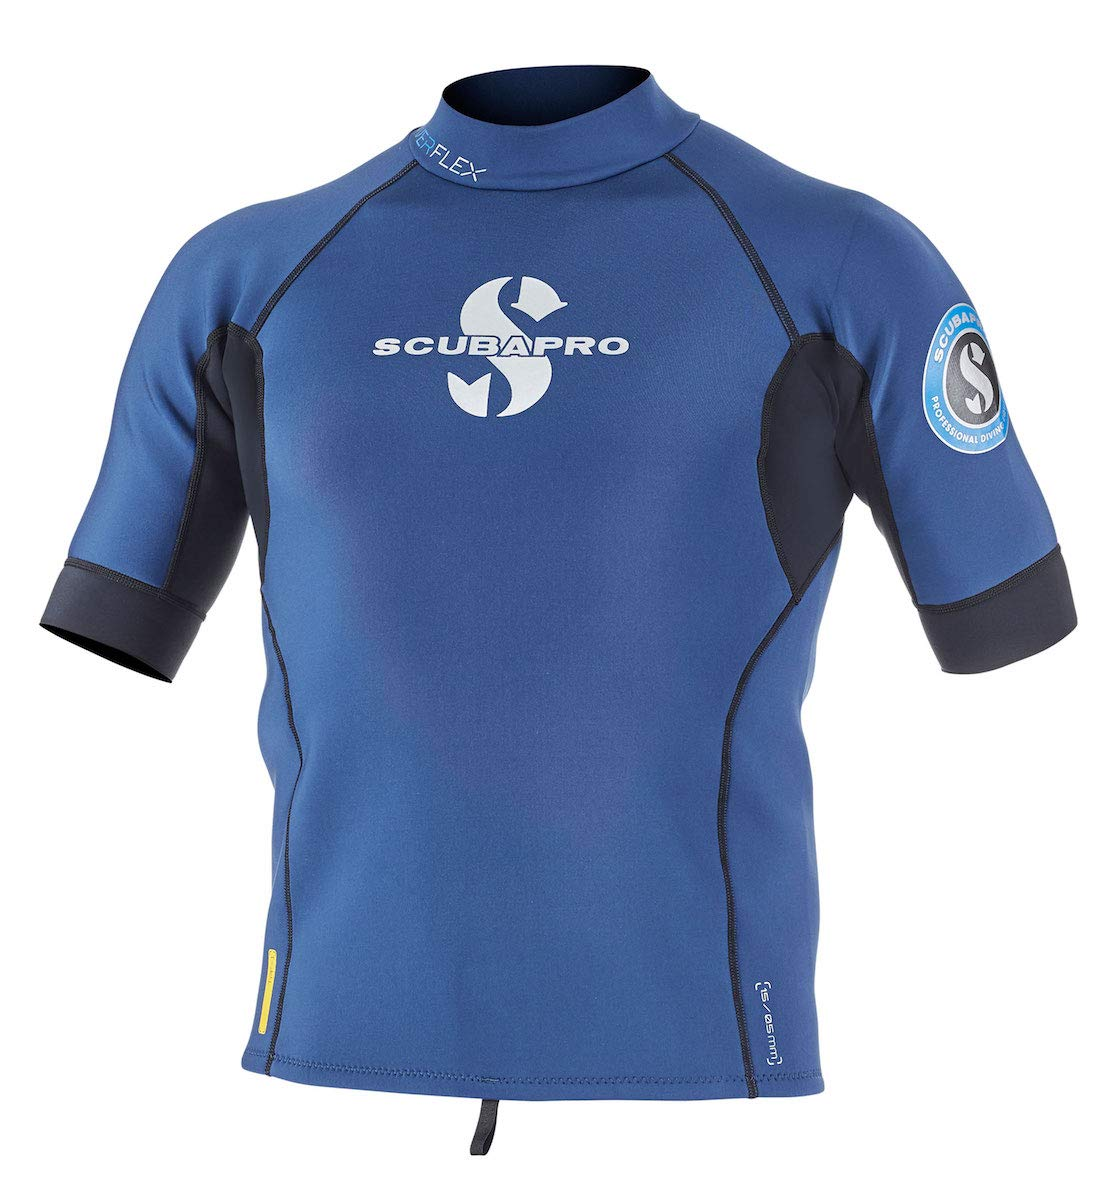 Scubapro Men's 1.5mm Everflex Short Sleeve Rash Guard (Aegean, Medium) by Scubapro (Image #1)